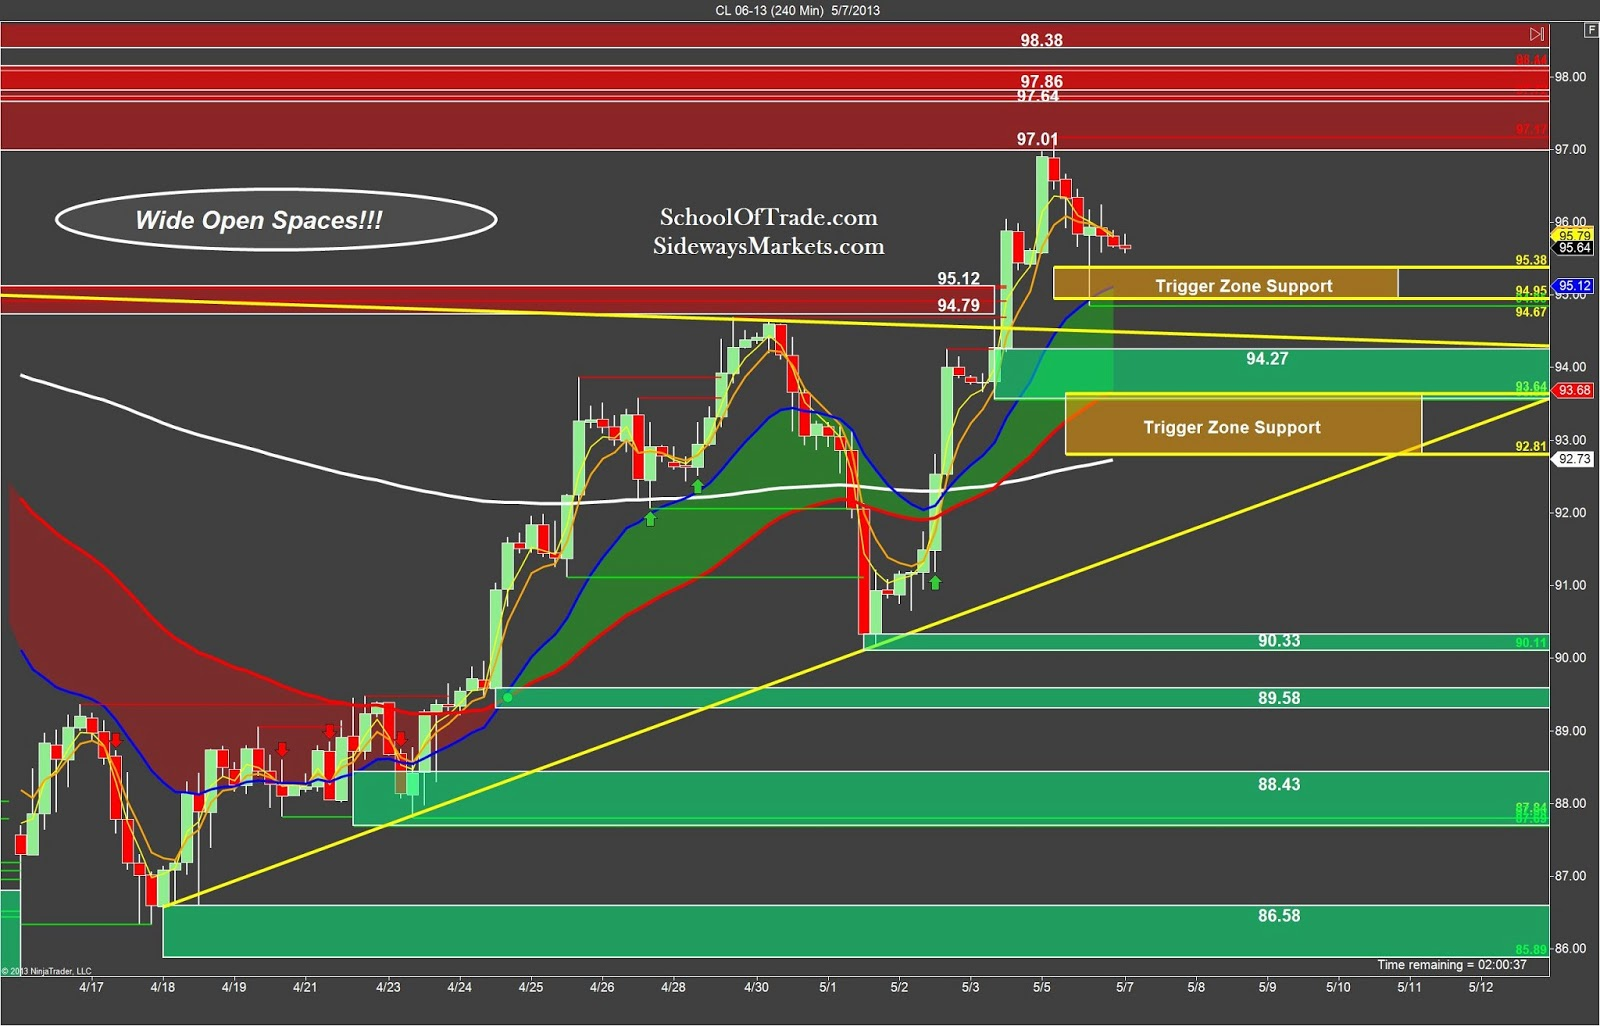 Oil futures day trading strategies